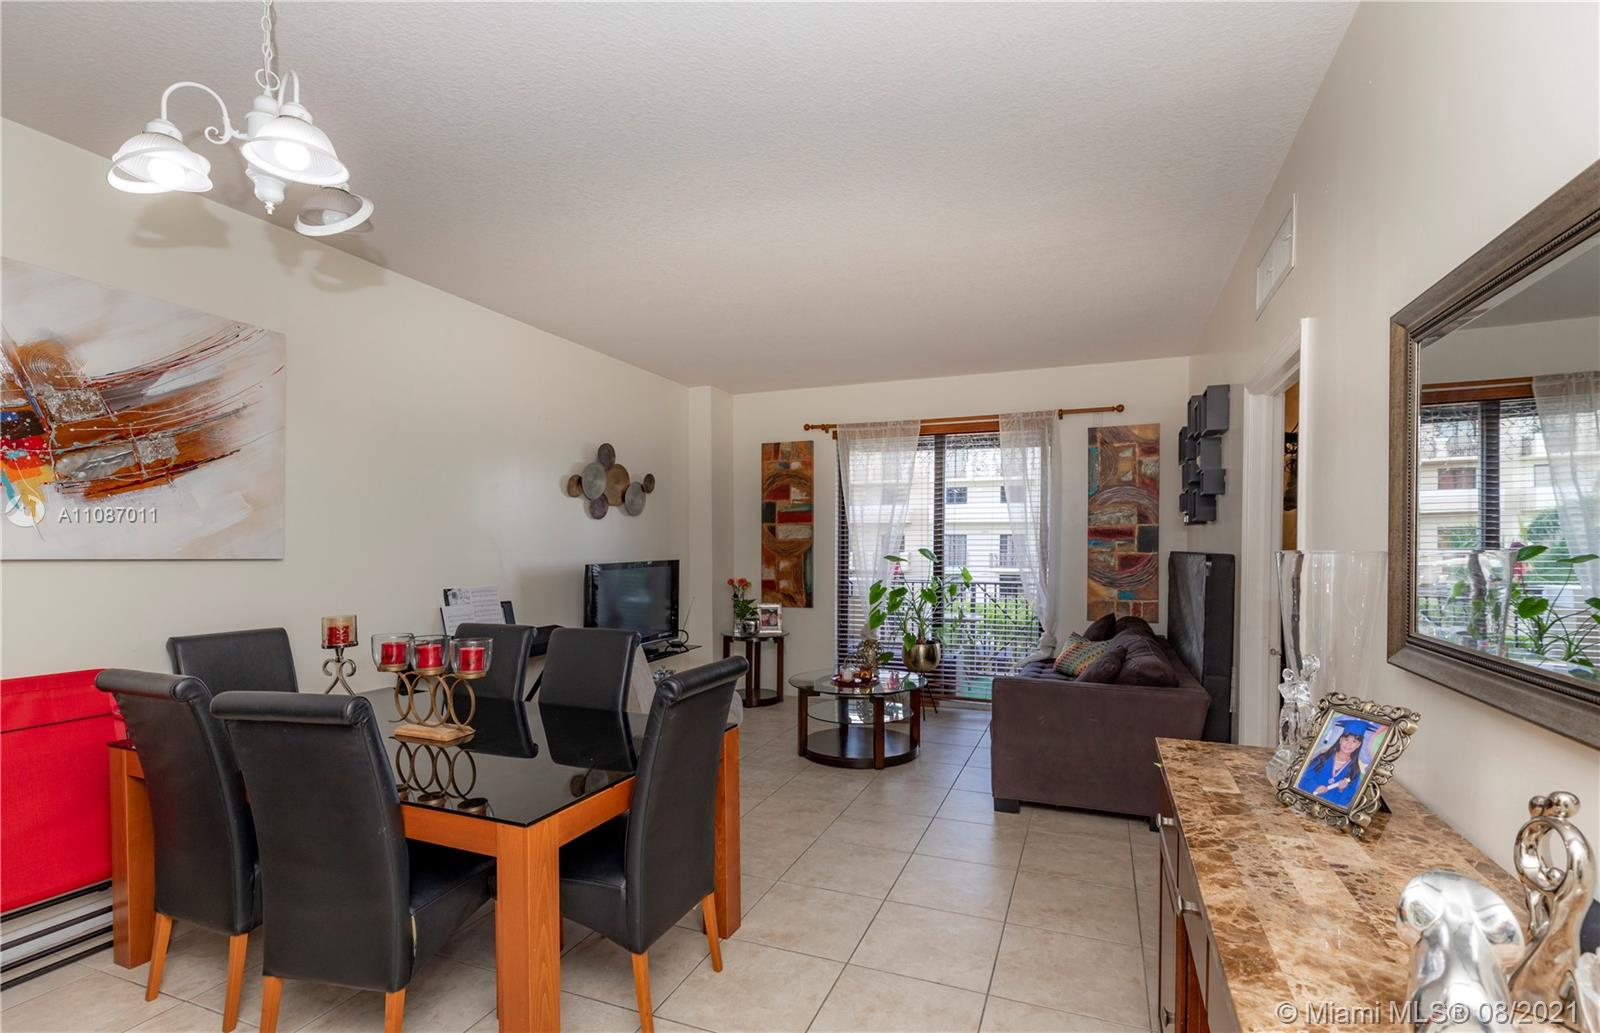 8430 SW 8th St #405B For Sale A11087011, FL